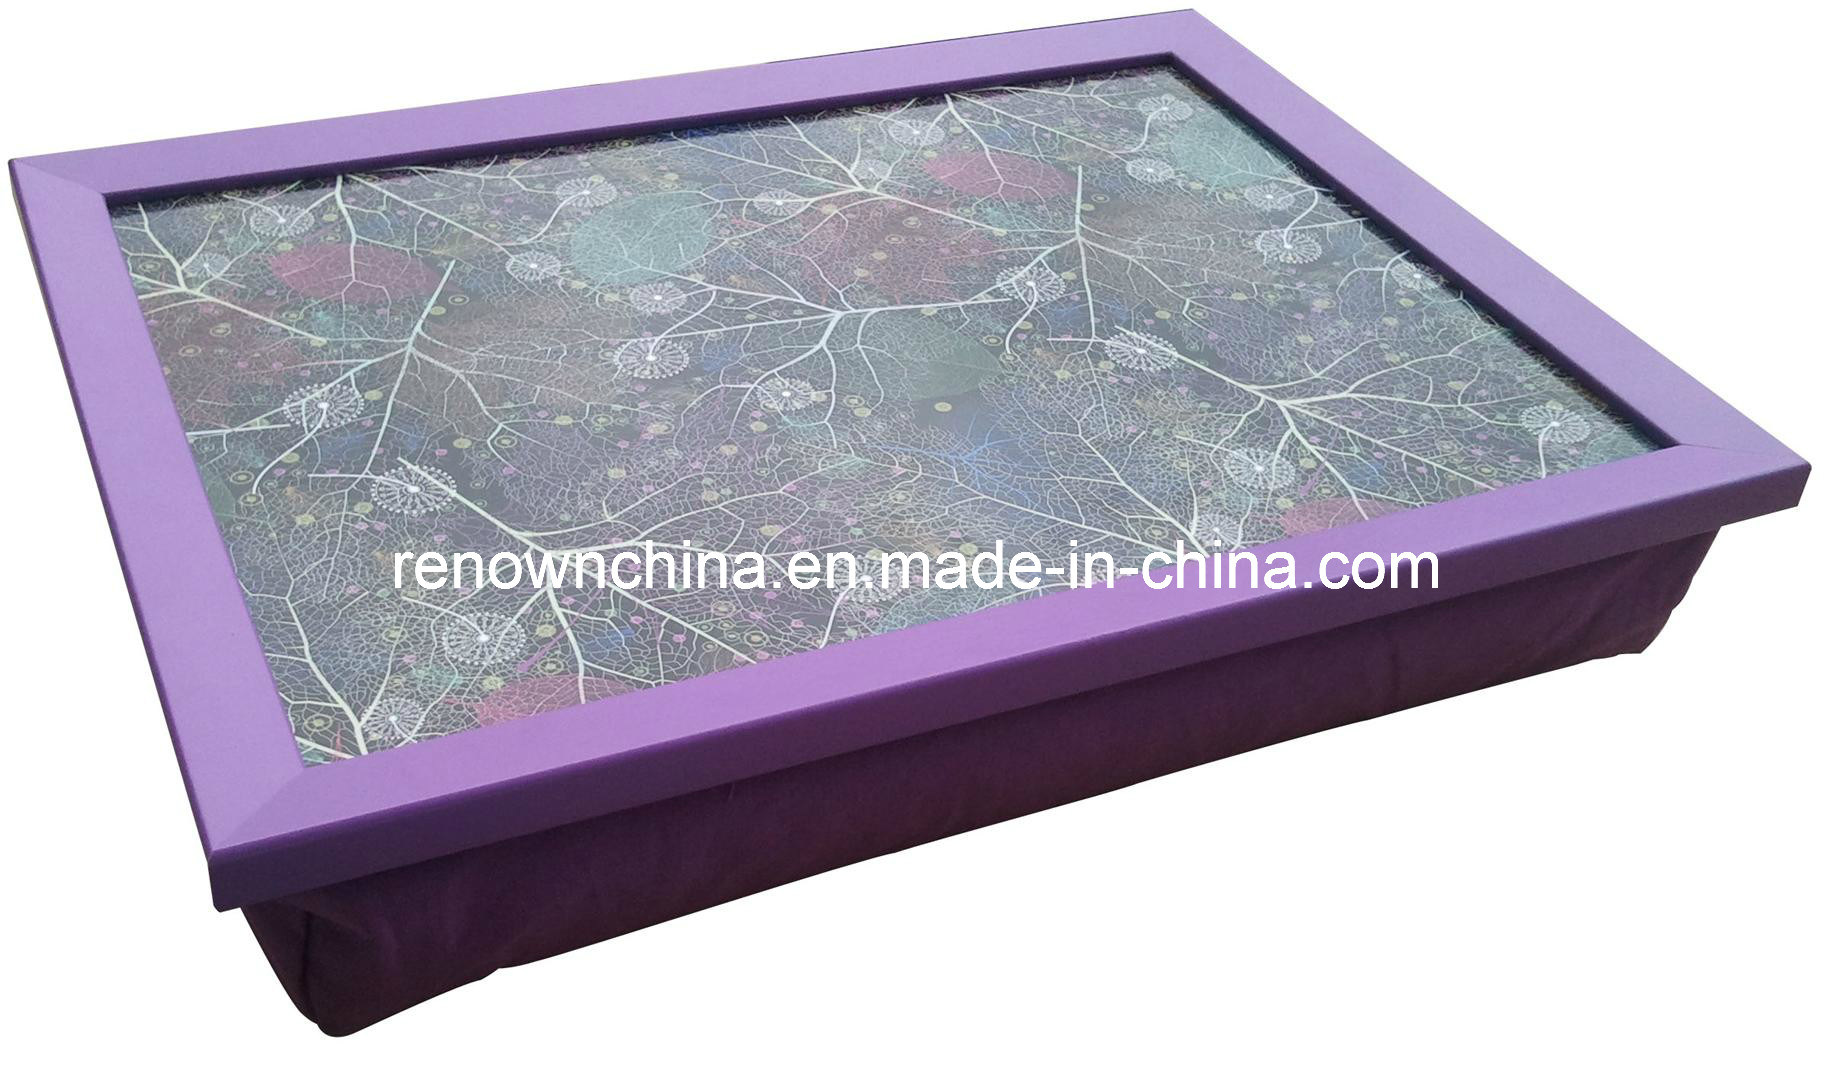 Cheap Smart Home Products China Lap Tray 80010 09 Photos Amp Pictures Made In China Com